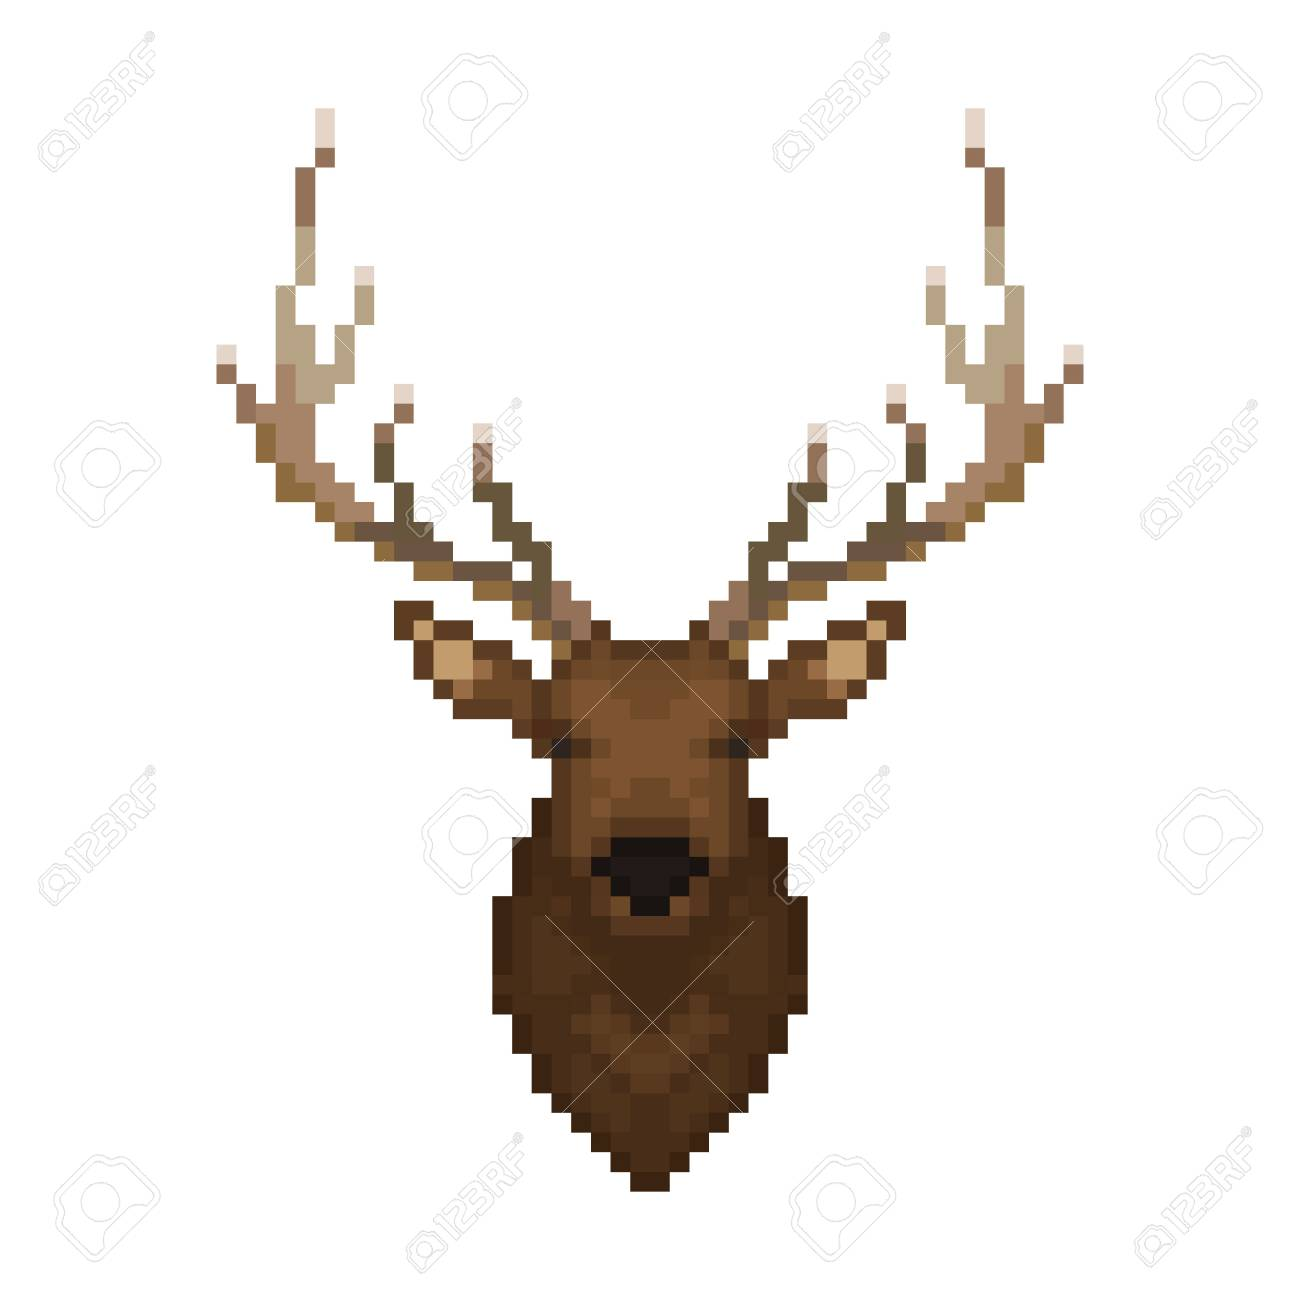 Deer Head Pixel Art Wild Animal Vector Illustration